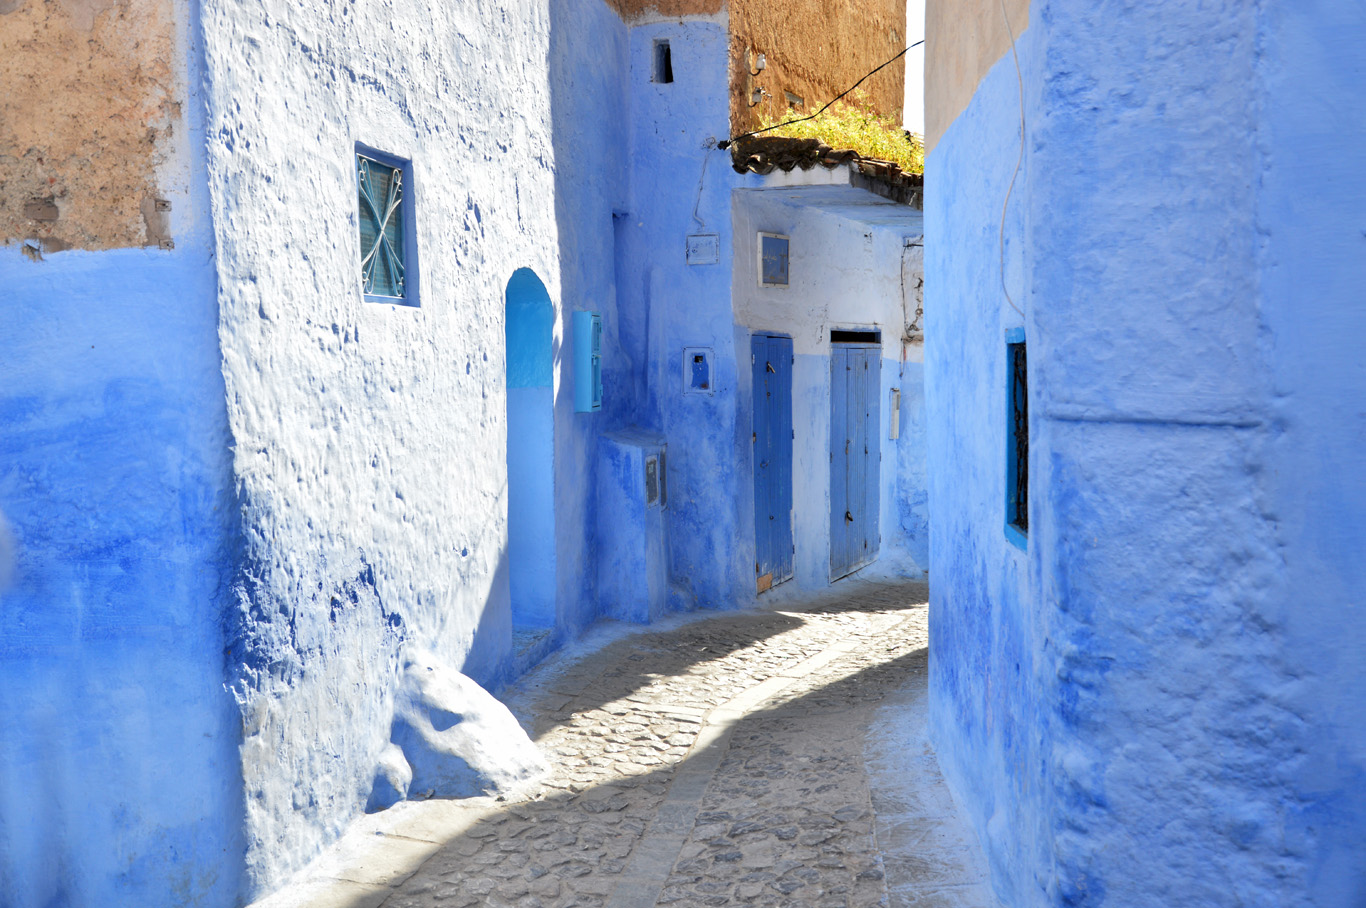 Chefchaoeun Original Blue Town In Morocco Adventurous Travels - Old town morocco entirely blue